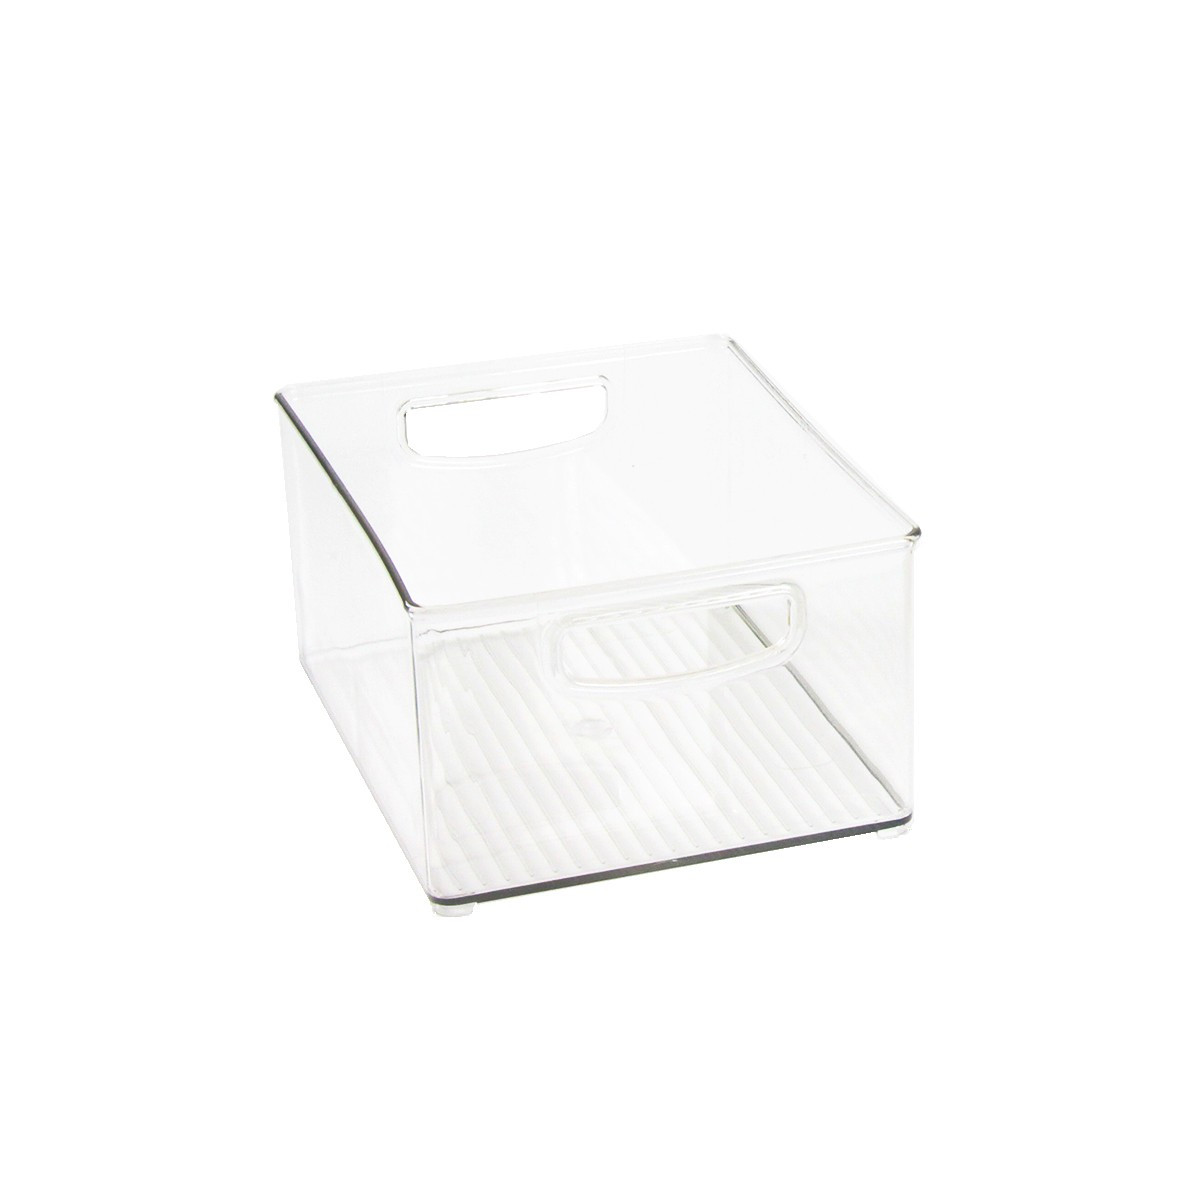 bac plastique transparent ikea maison design bahbe